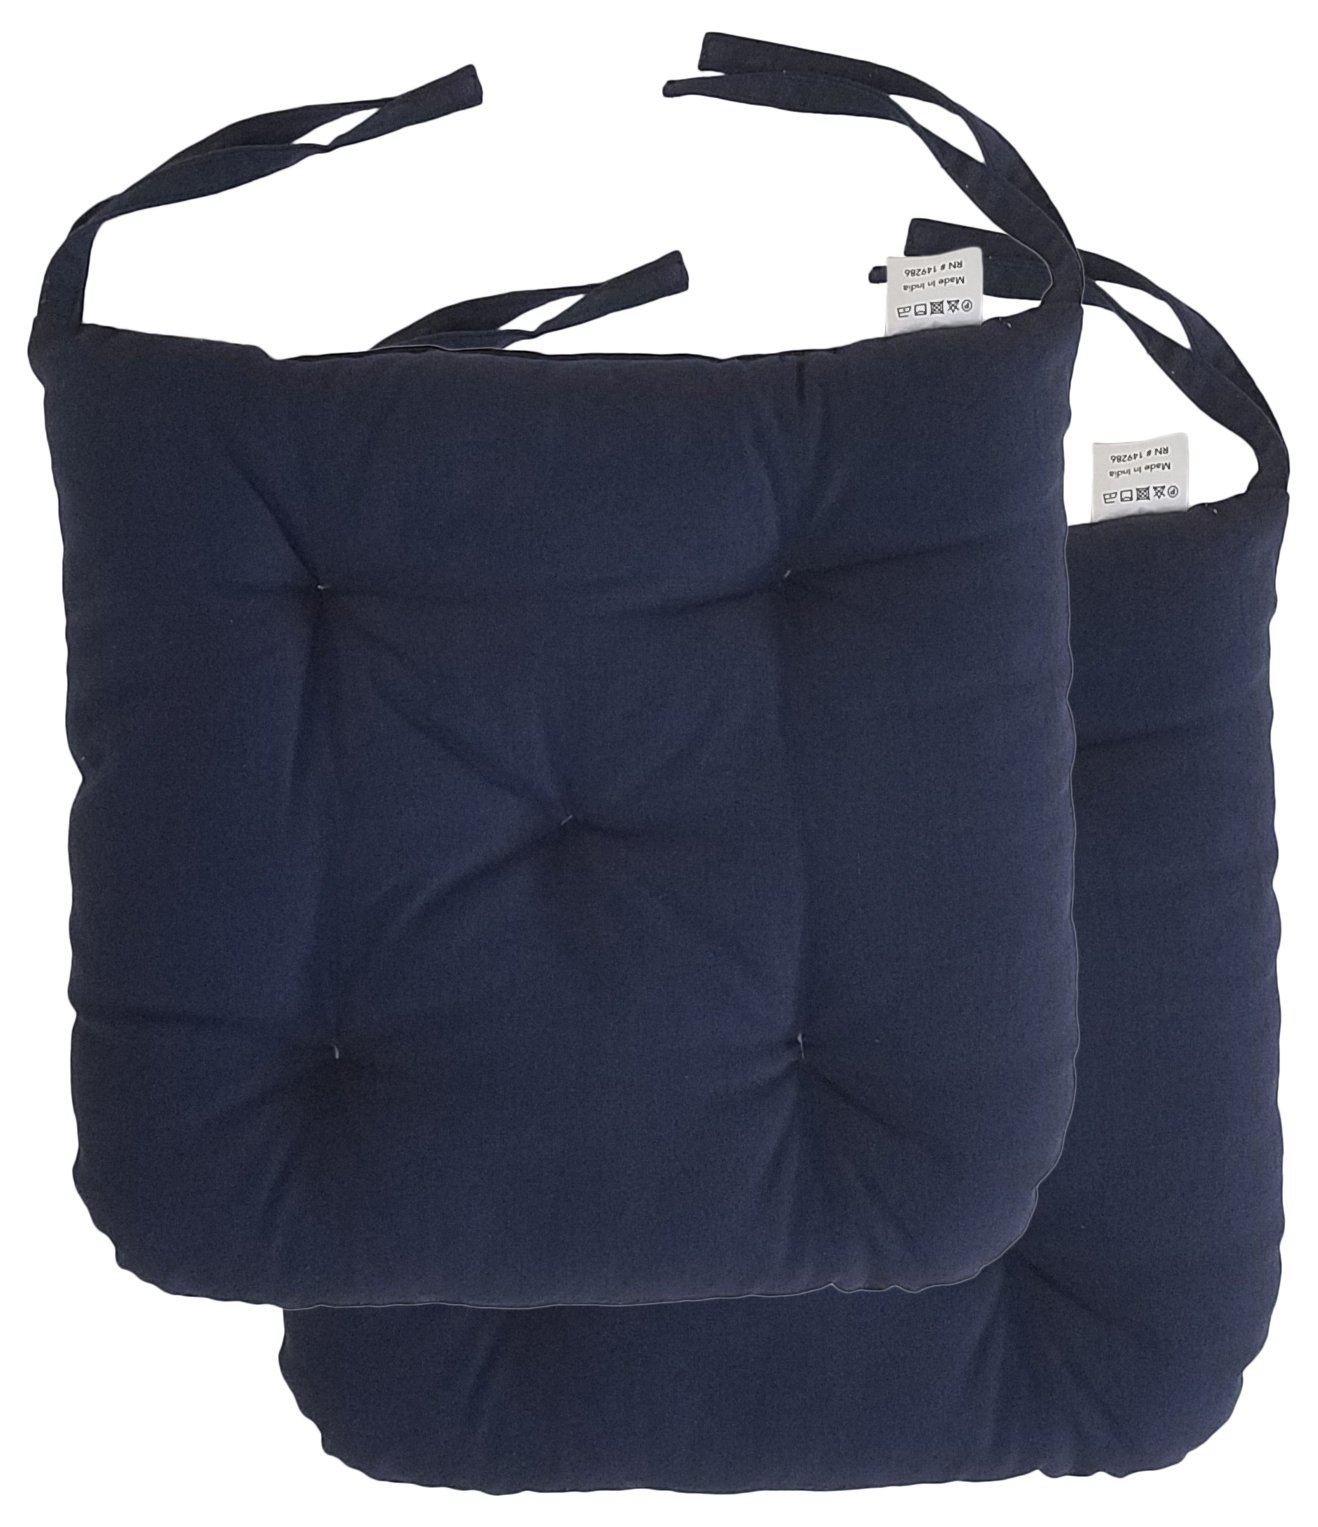 """Cottone 100% Cotton Chair Pads w/ Ties (Set of 2)   16"""" x 15"""" Round Square   Extra-Comfortable & Soft Seat Cushion   Ergonomic Pillows for Rocking, Dining, Patio, Camping, Kitchen Chairs & More (Navy)"""